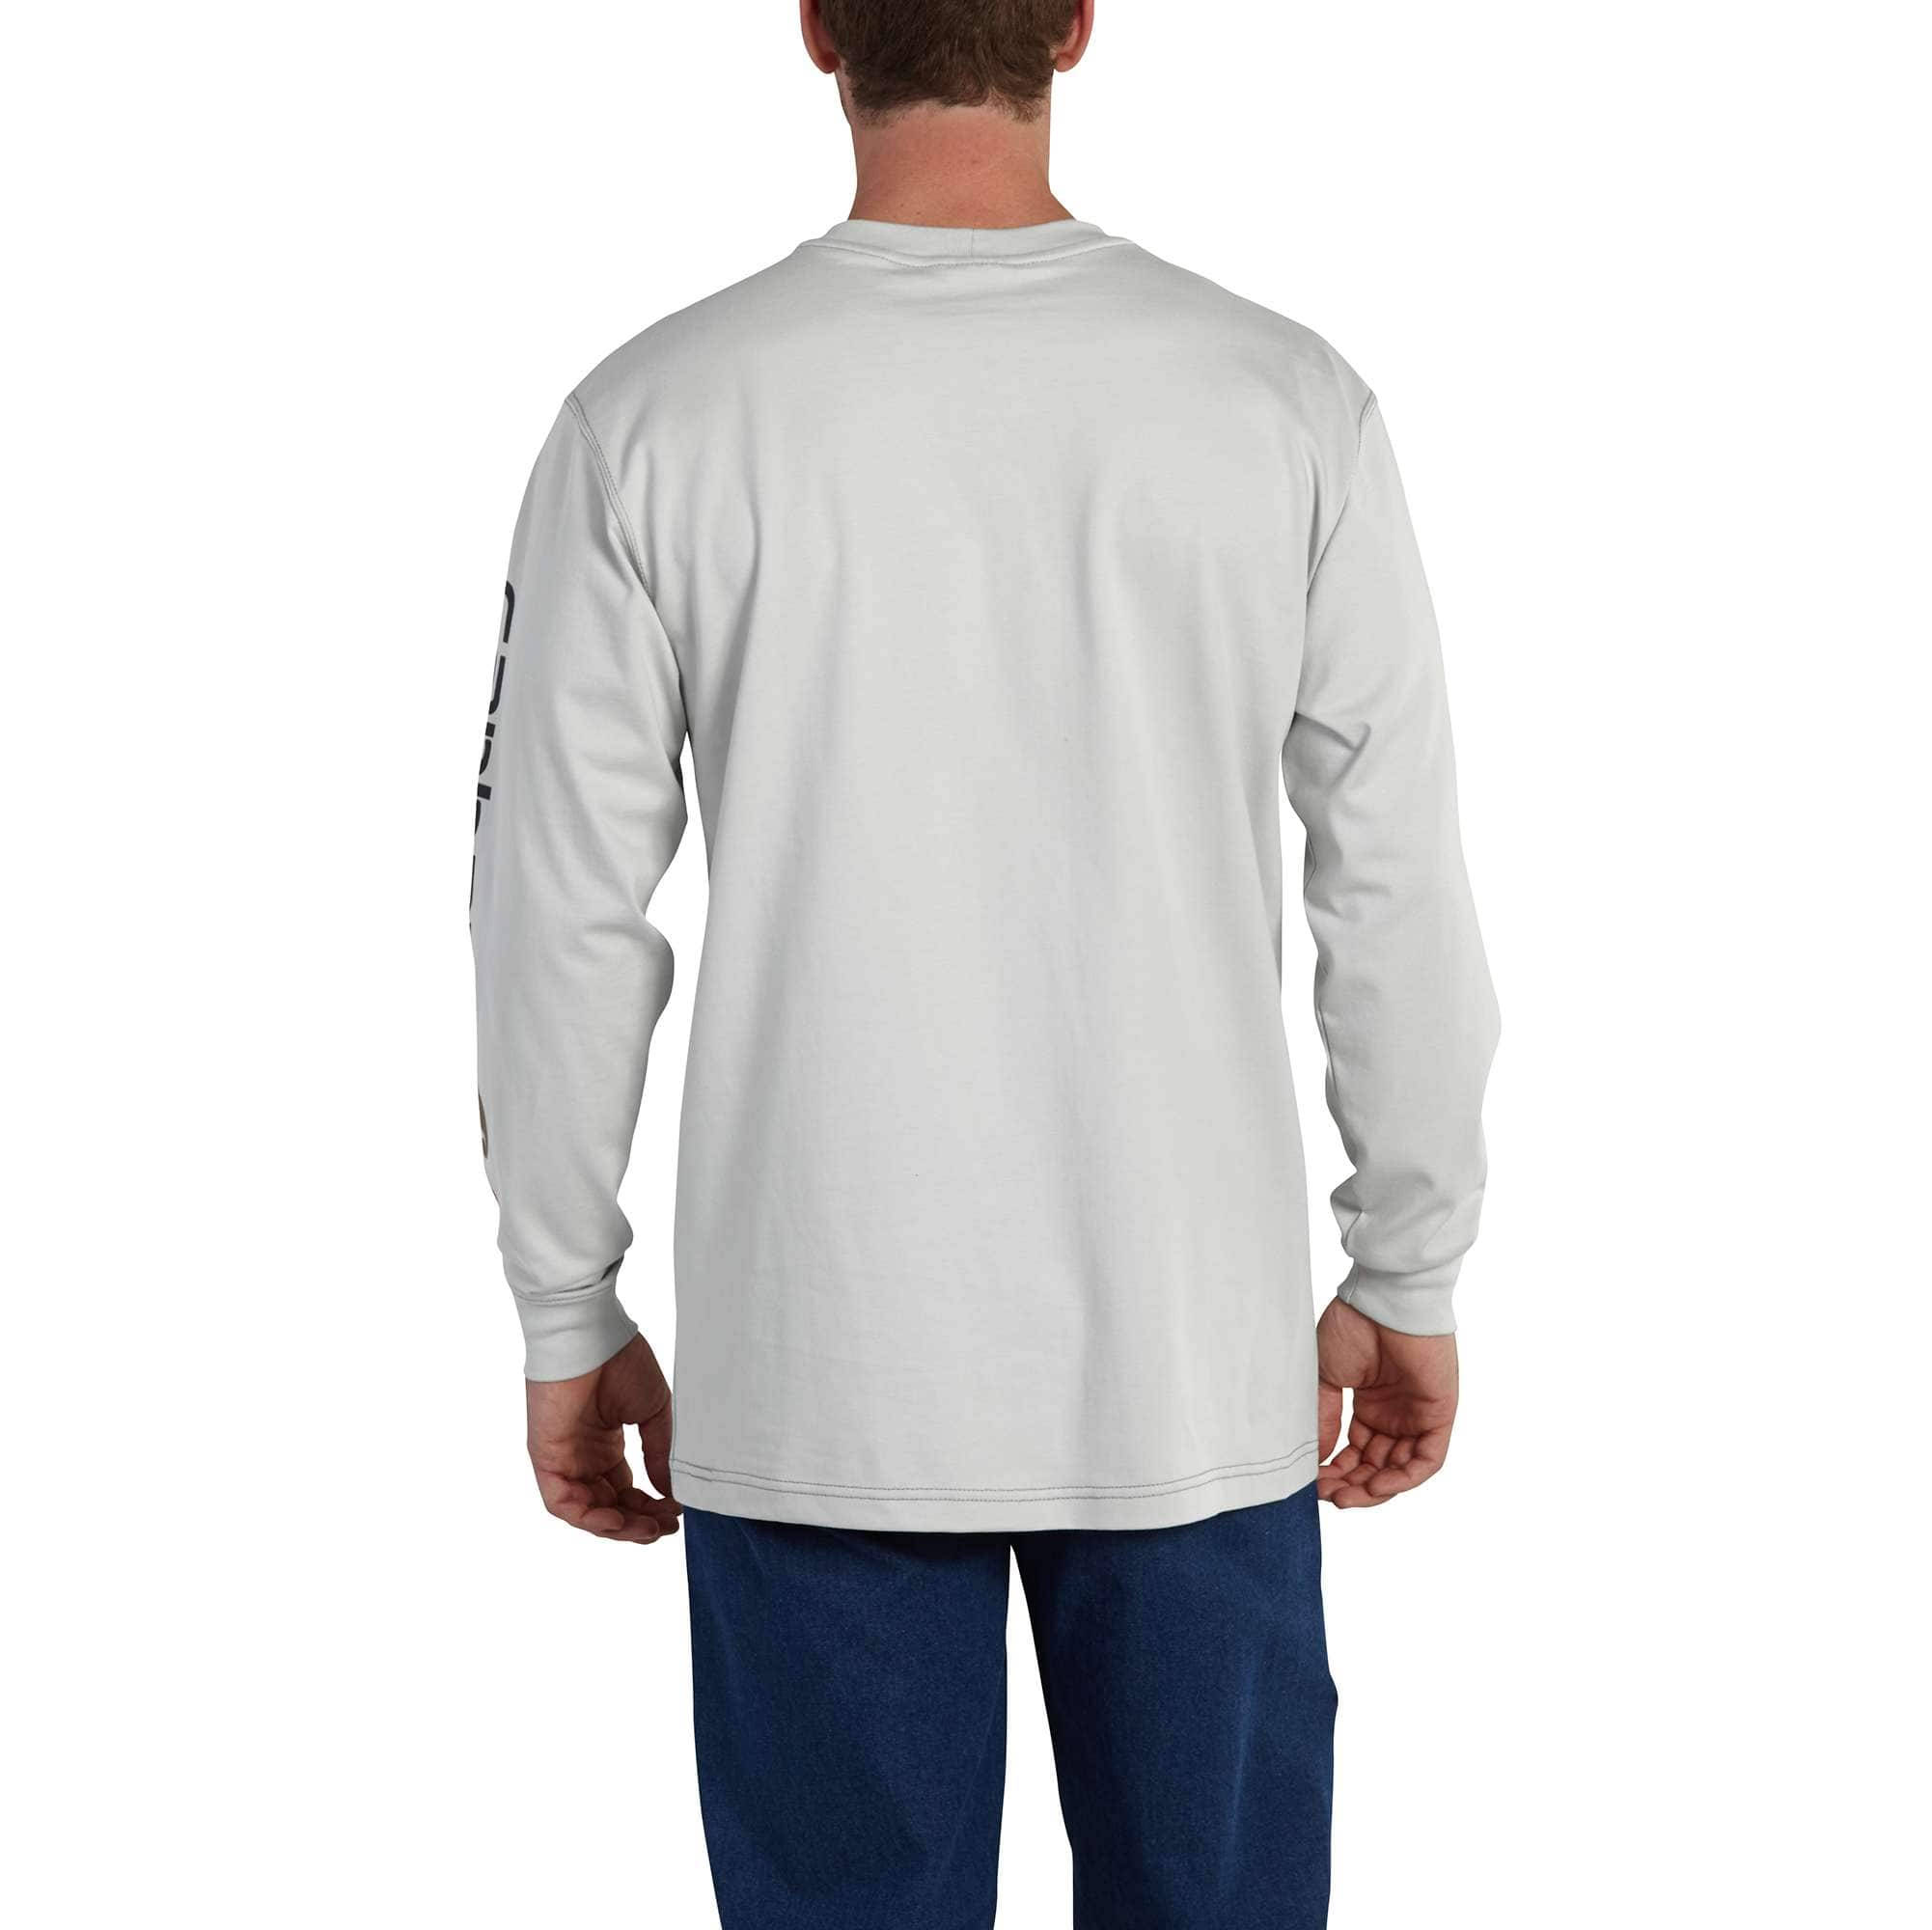 Men S Flame Resistant Carhartt Force Graphic Long Sleeve T Shirt Carhartt